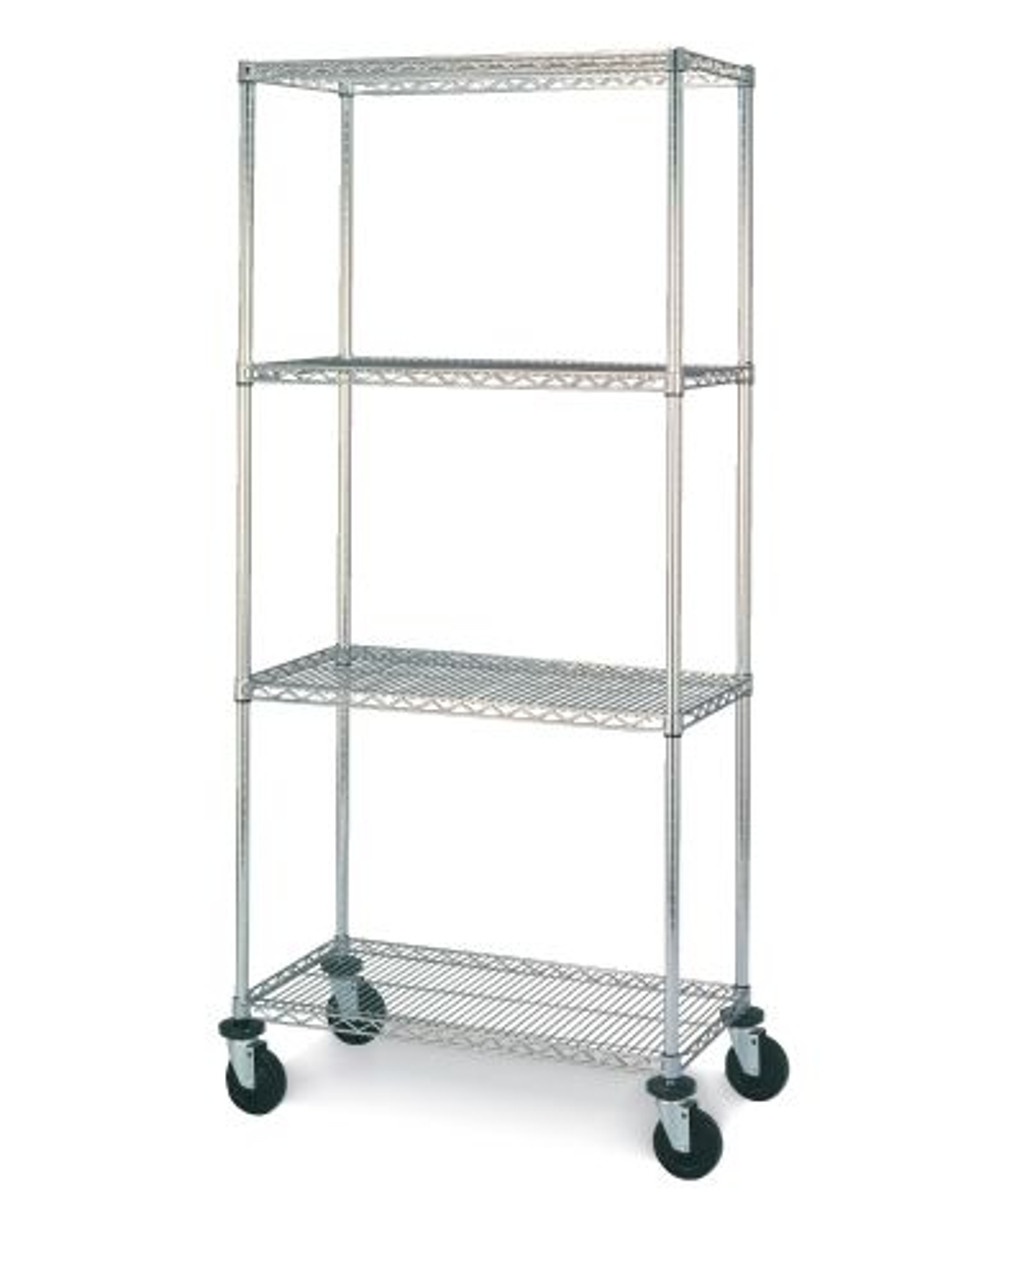 "Olympic 24"" Deep 4 Shelf Mobile Carts - Chrome - 24"" x 30"" x 79"" MJ2430-74UC"